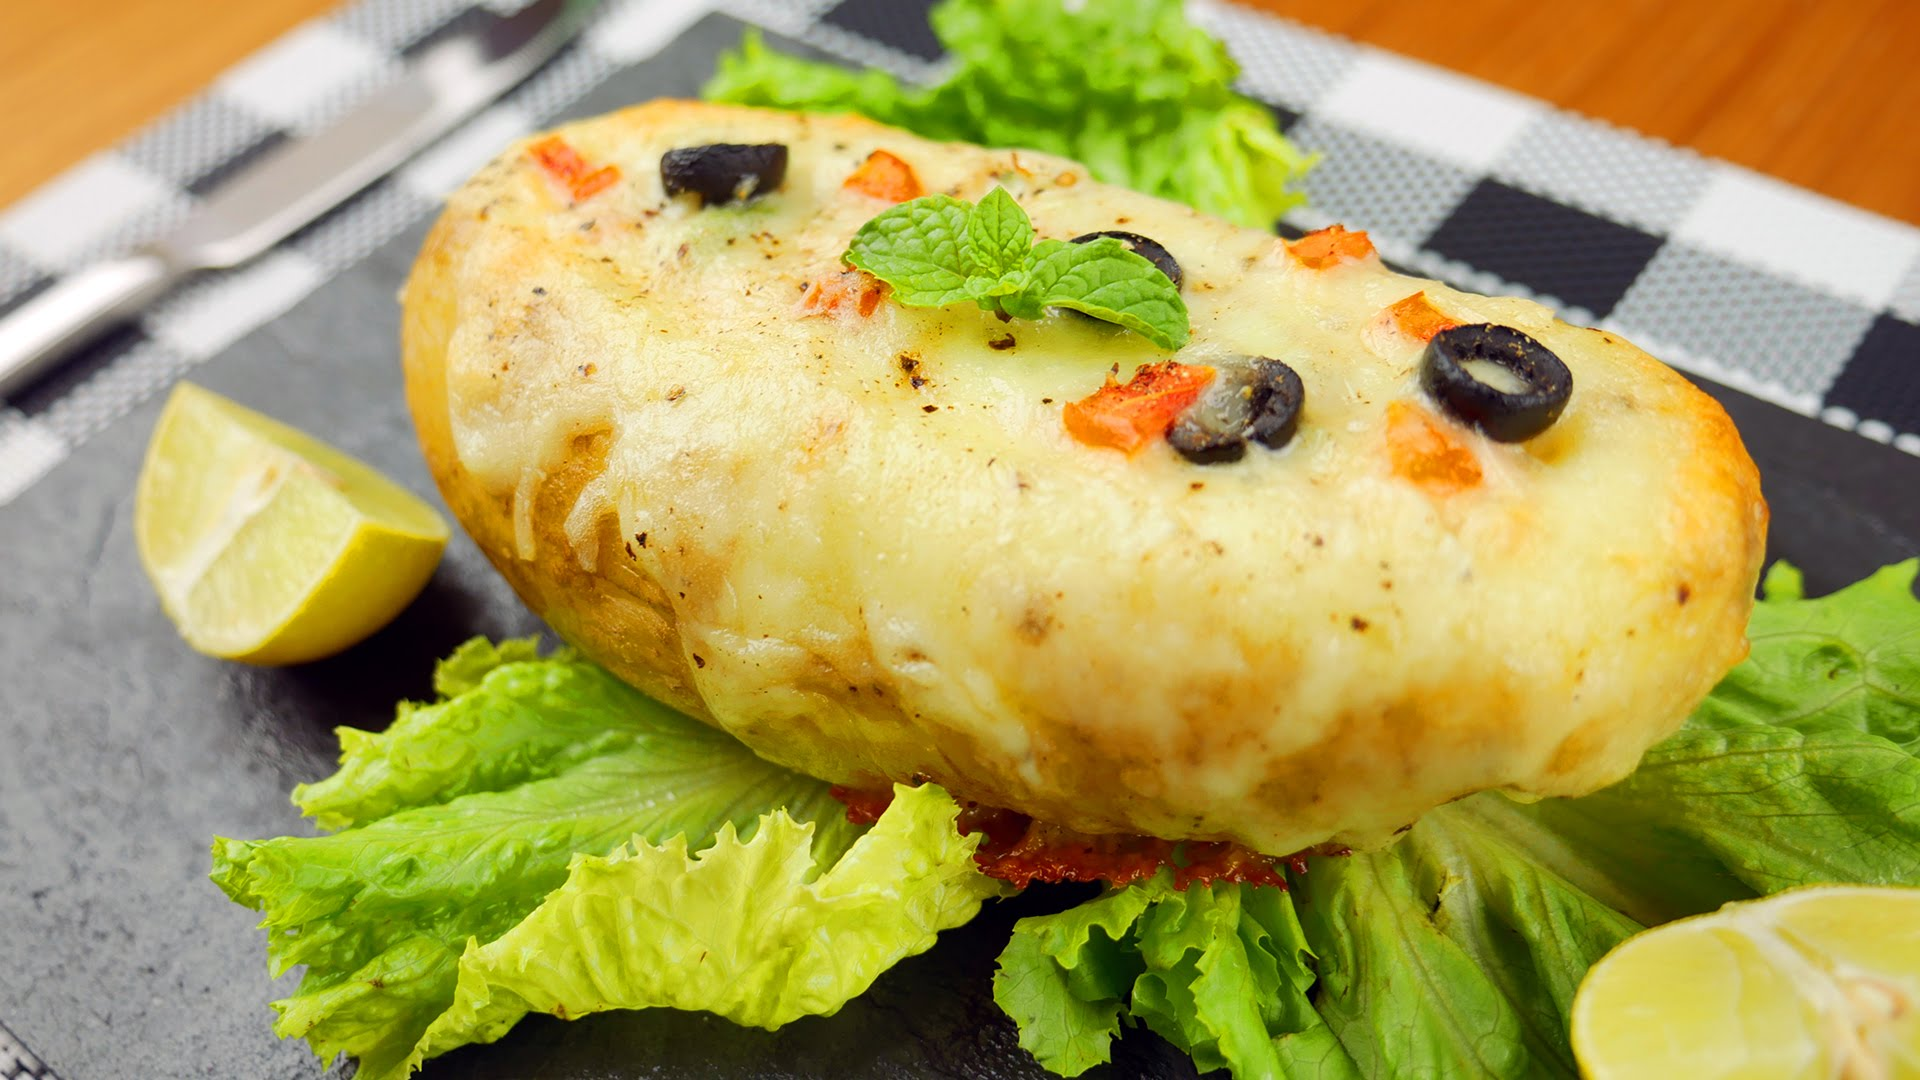 Stuffed Potato With Cheese